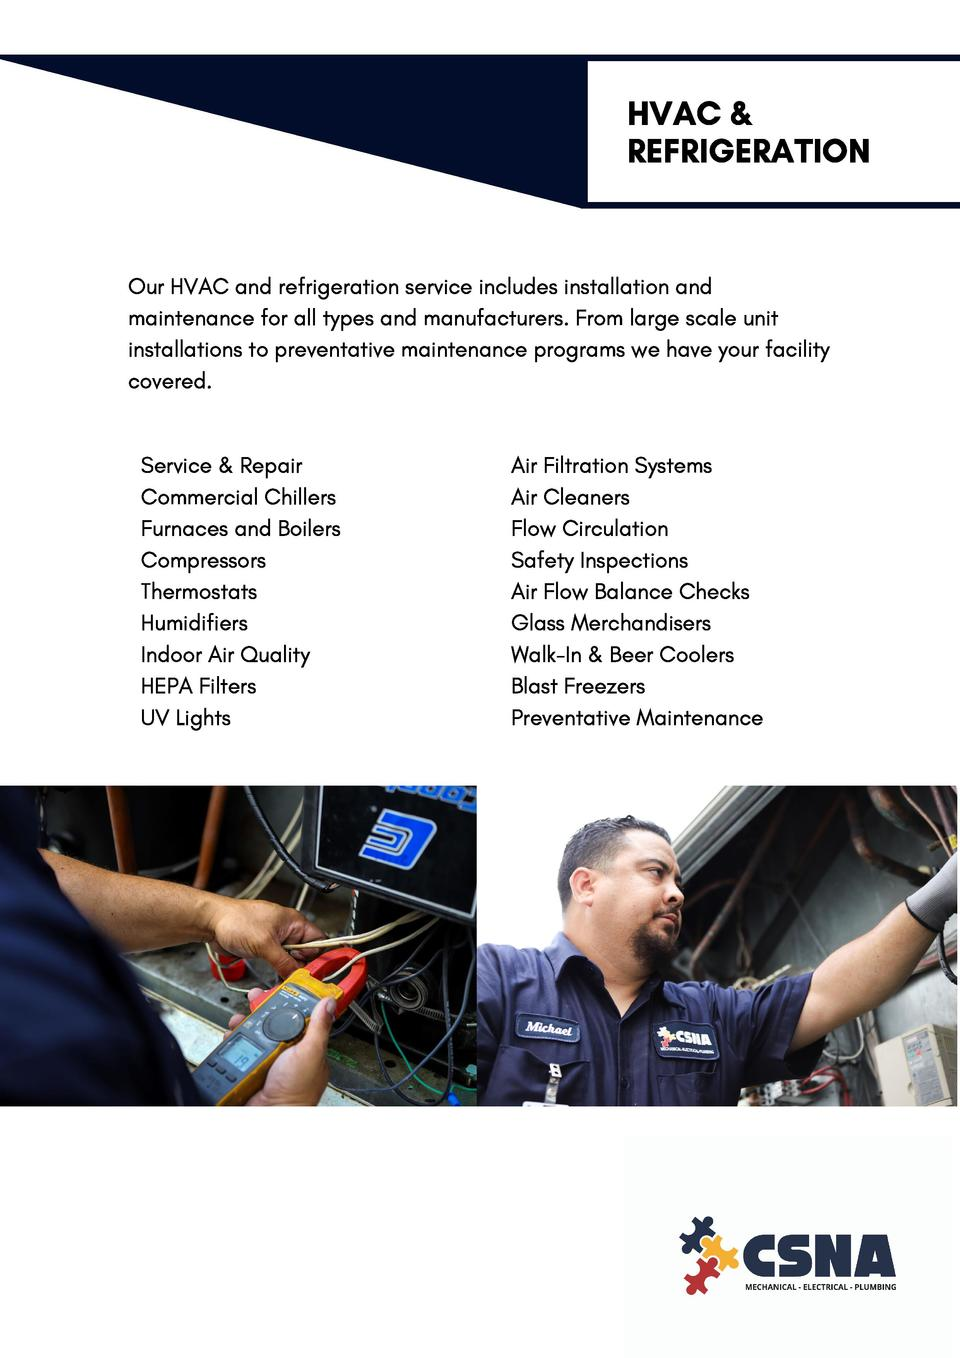 HVAC   REFRIGERATION  Our HVAC and refrigeration service includes installation and maintenance for all types and manufactu...